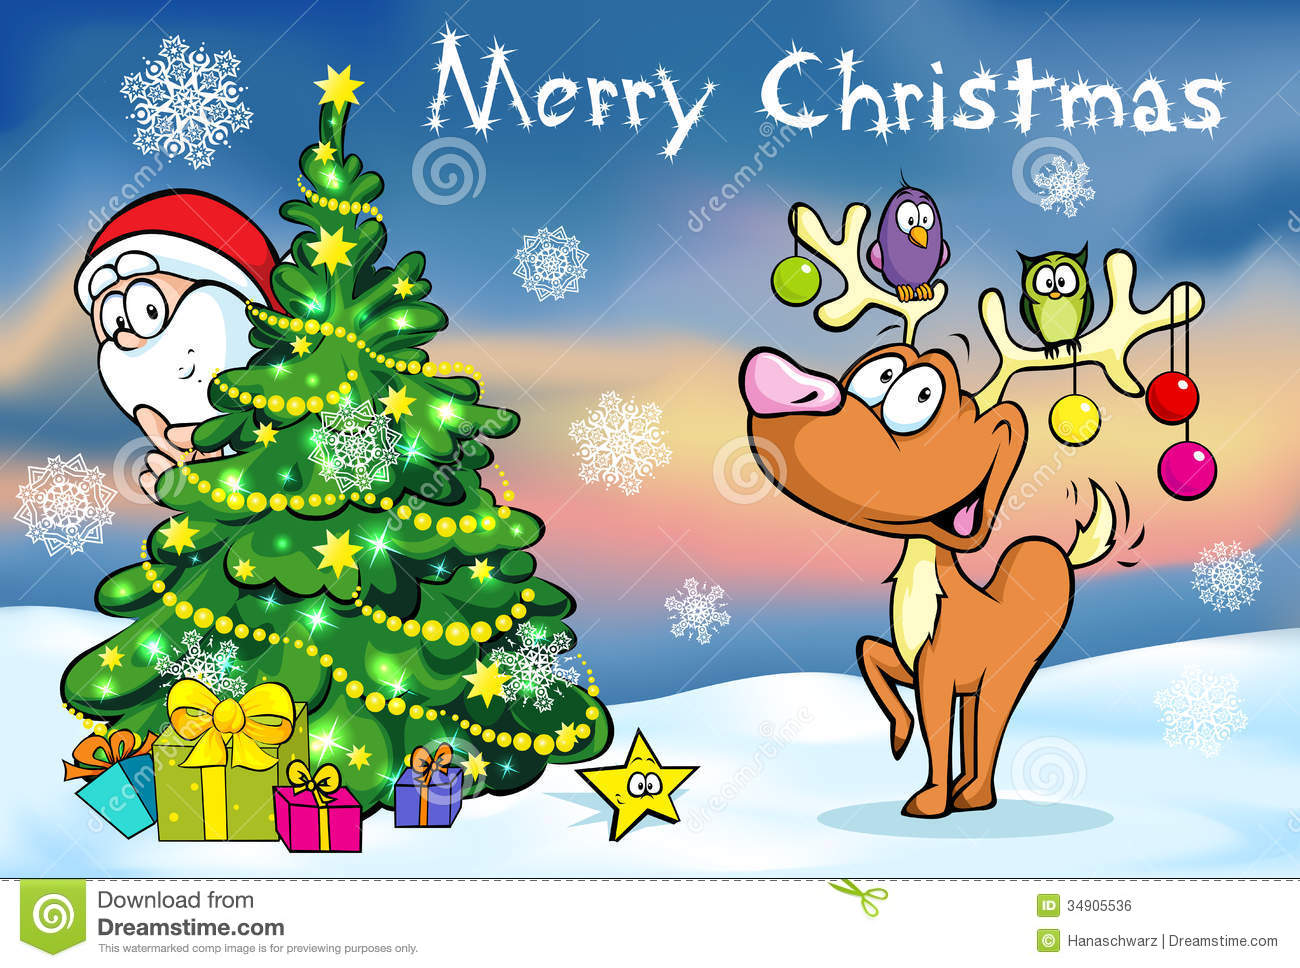 Merry Christmas Greeting Card Stock Vector - Illustration of card ...